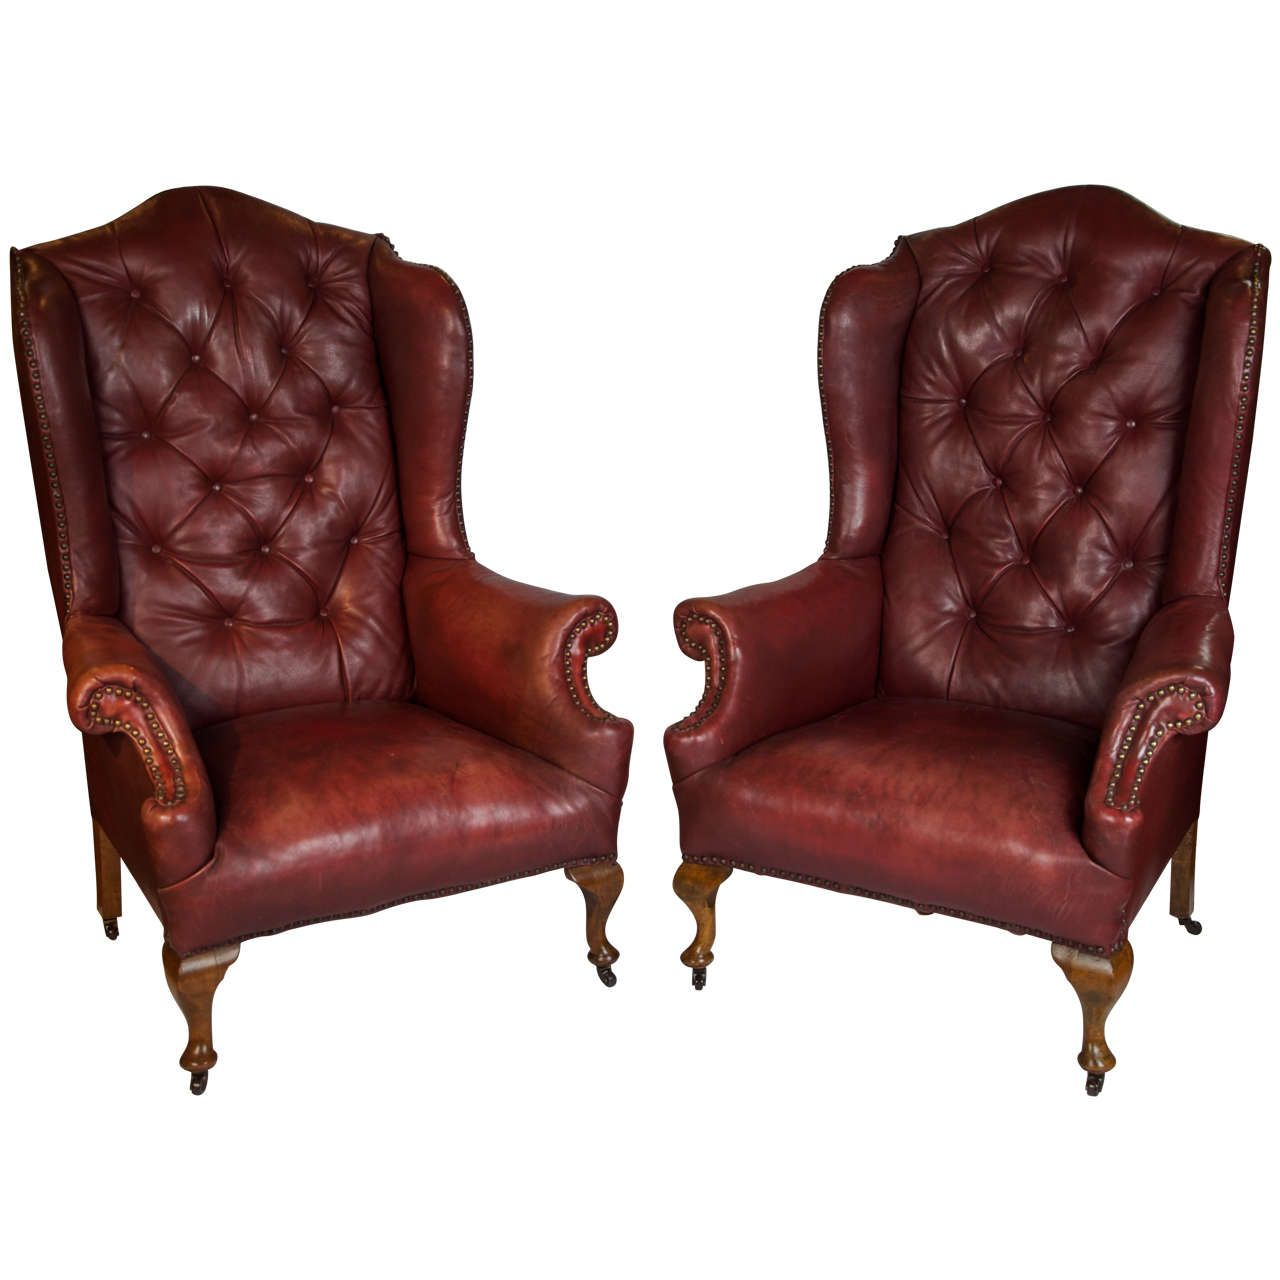 Pair Of Early 20th Century Red Leather Wing Back Chairs | From A Unique  Collection Of